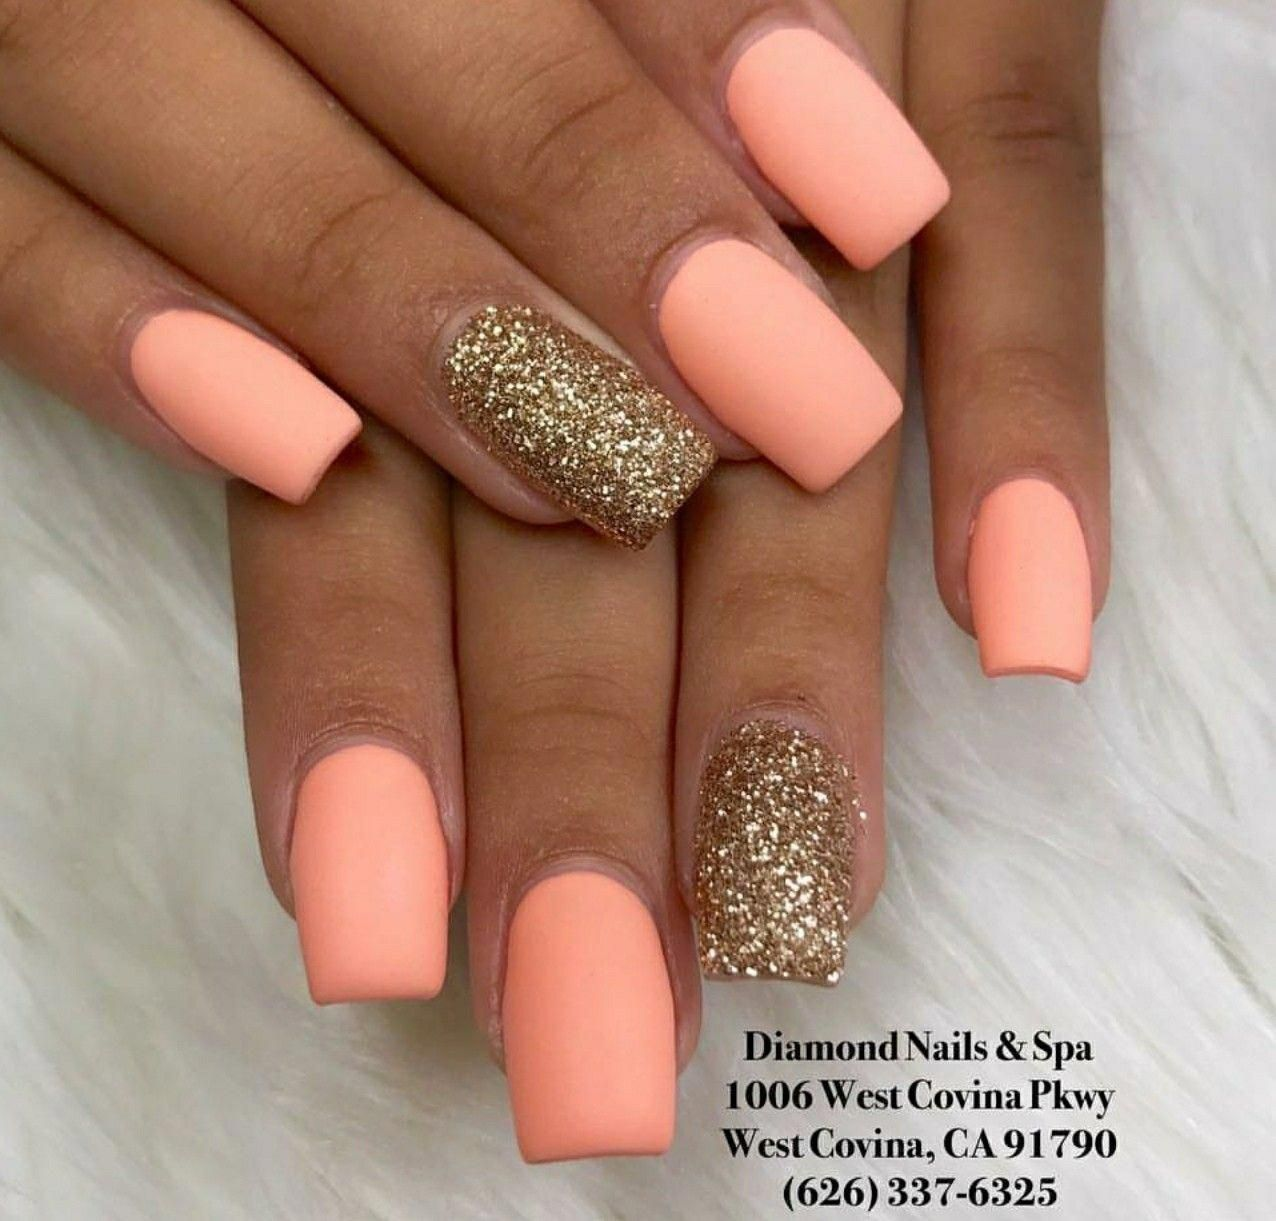 Summer Nails Acrylic Acrylic Nails Designs For Summer Be It Short Long Almond Shaped Stiletto Square S Gold Glitter Nails Square Acrylic Nails Square Nails